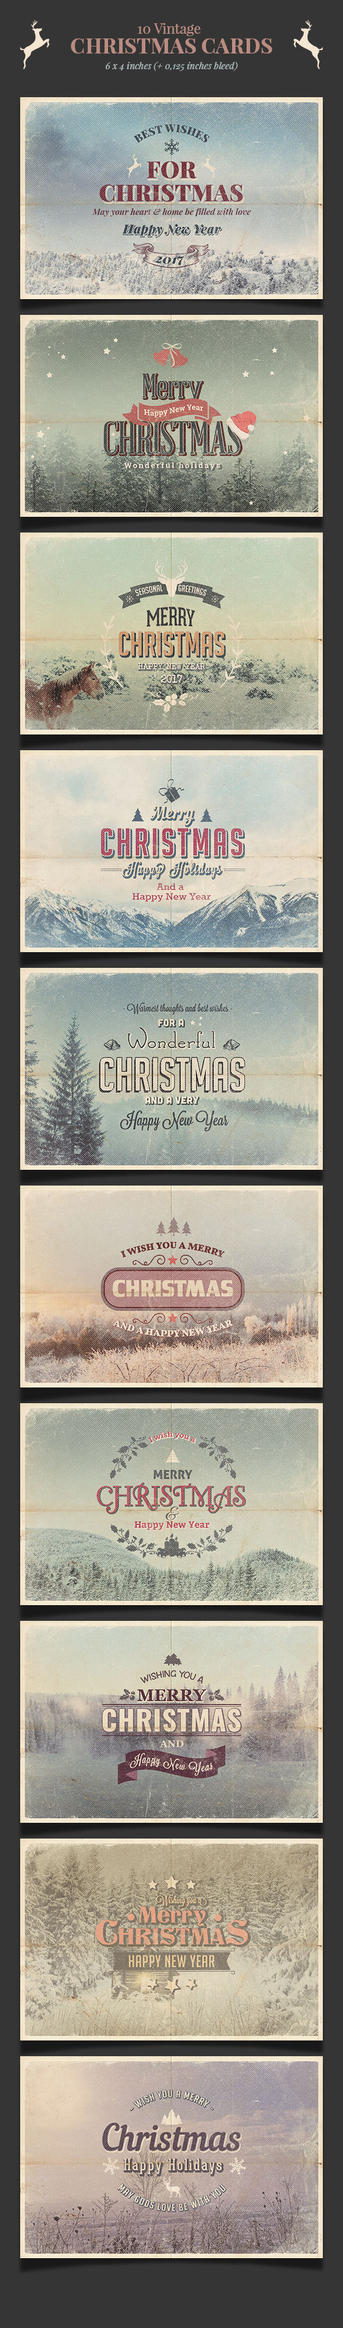 Preview-christmas-card10 Vintage Christmas Cards by imagearea